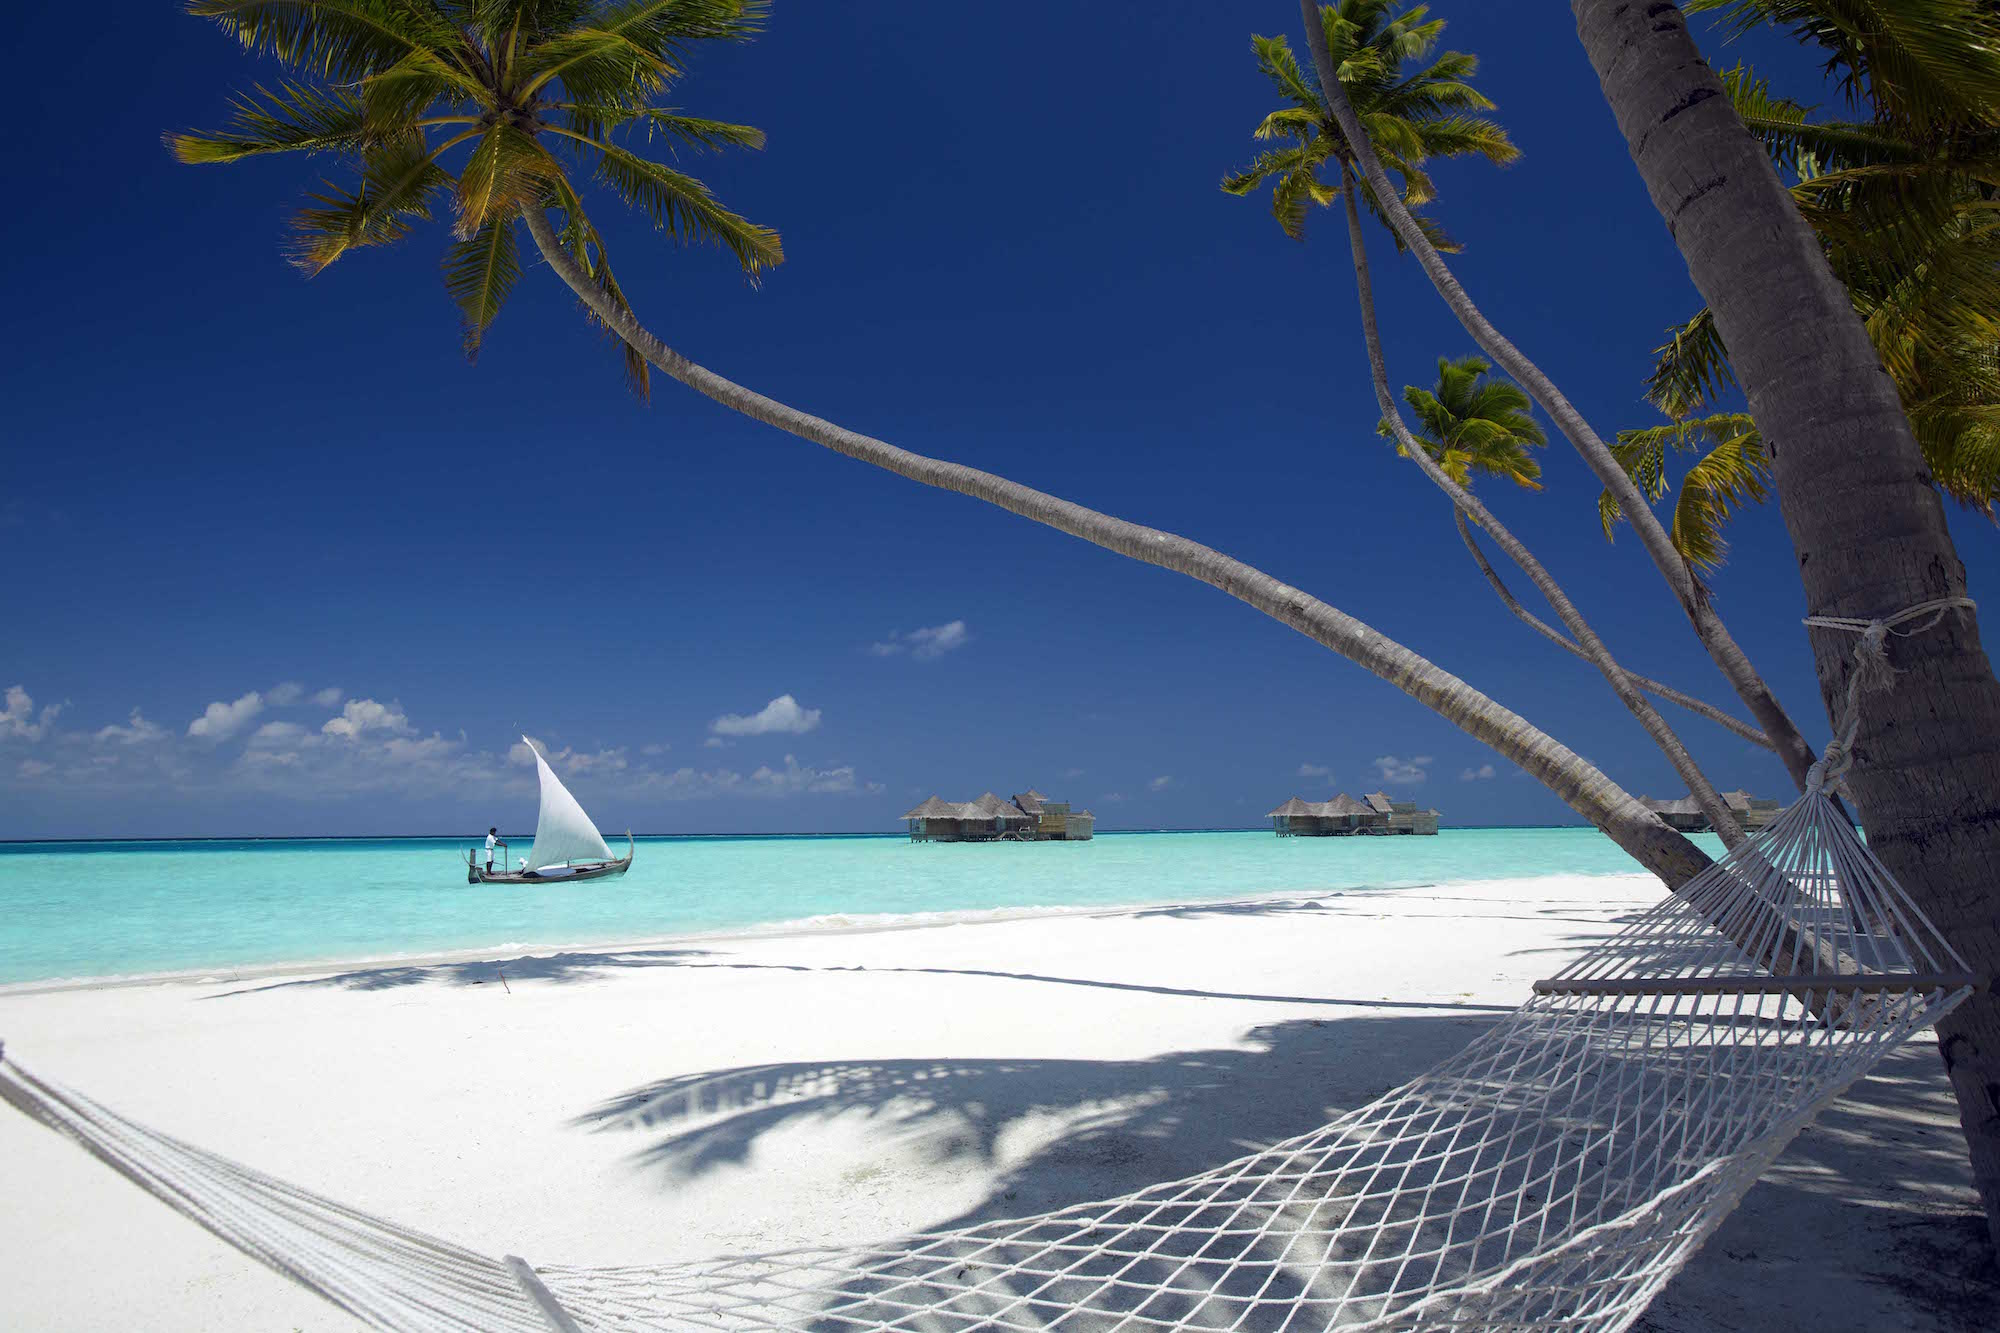 Gili Lankanfushi Resort Maldives - Hammock on the beach